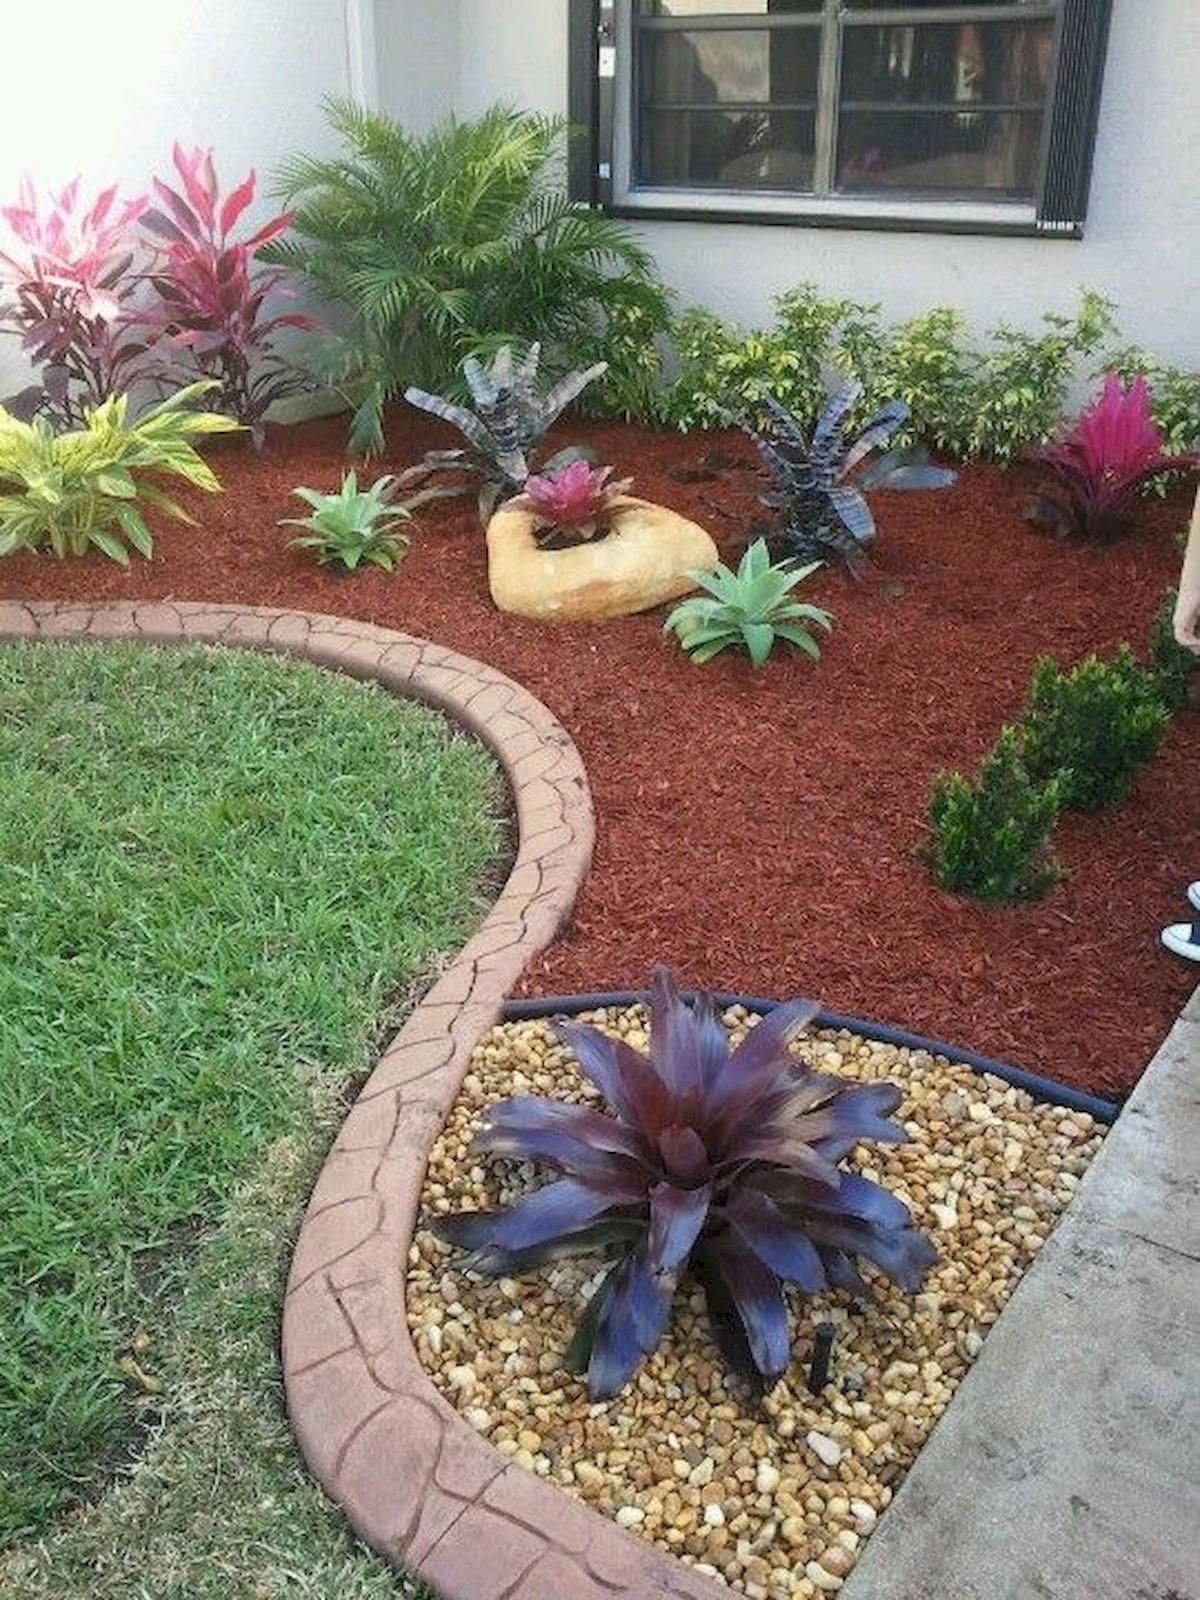 90 simple and beautiful front yard landscaping ideas on a on backyard landscaping ideas with minimum budget id=82443